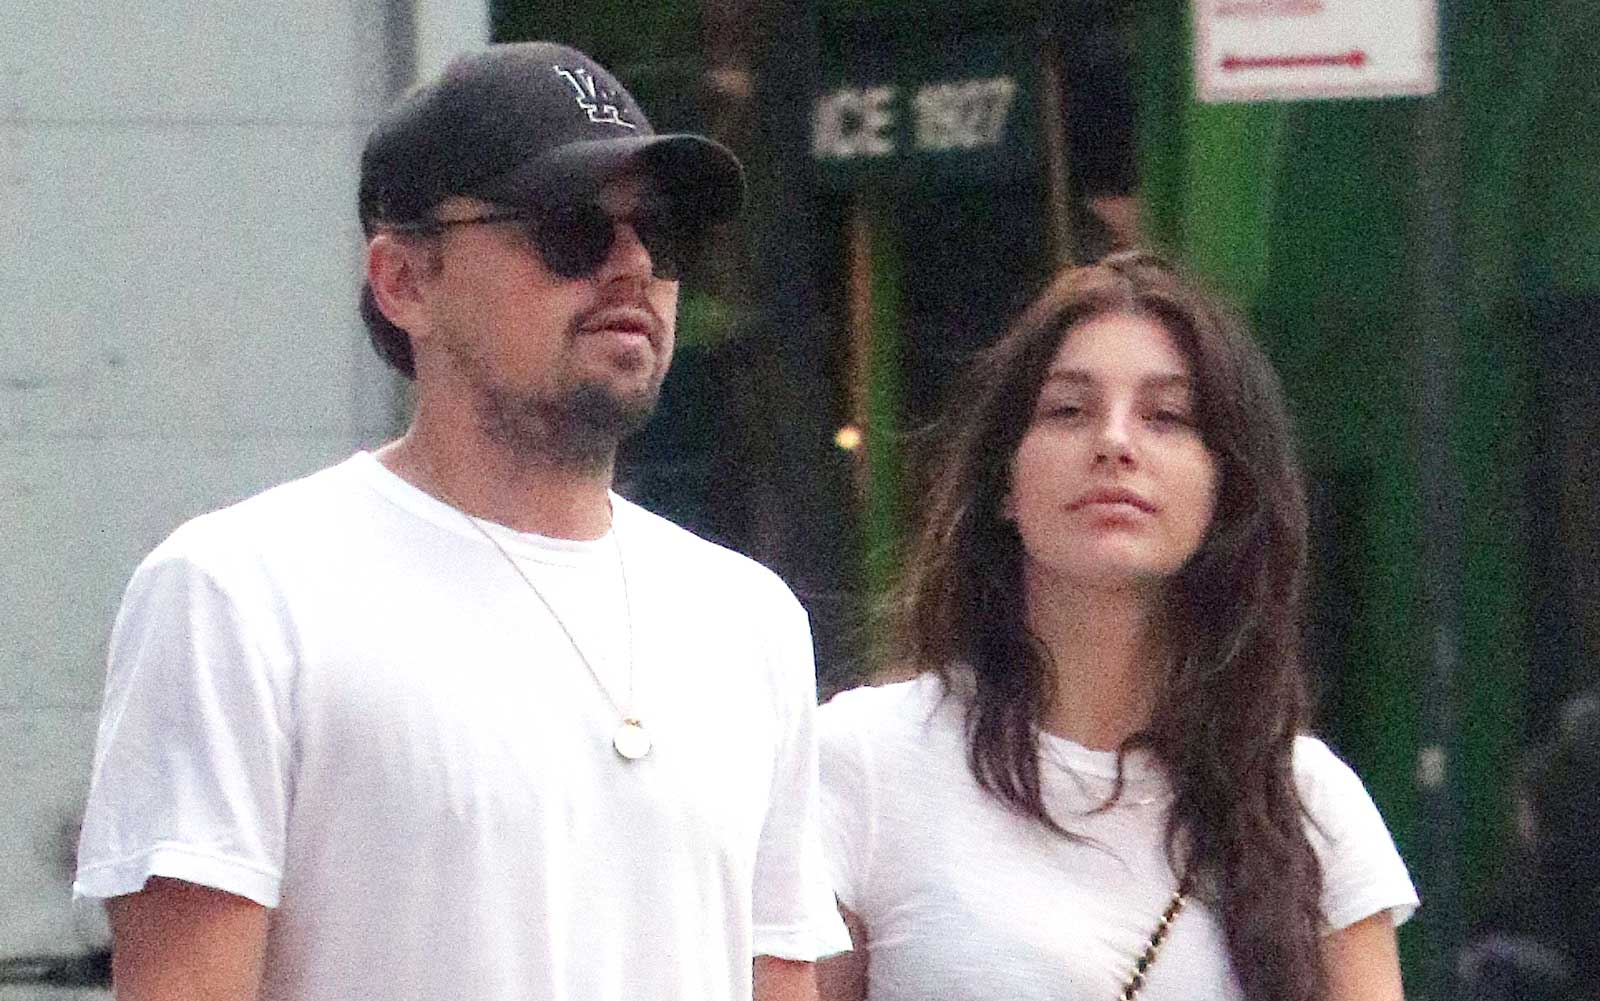 Leonardo DiCaprio Is Spending His Summer on a Yacht in the South of France, Surprising No One